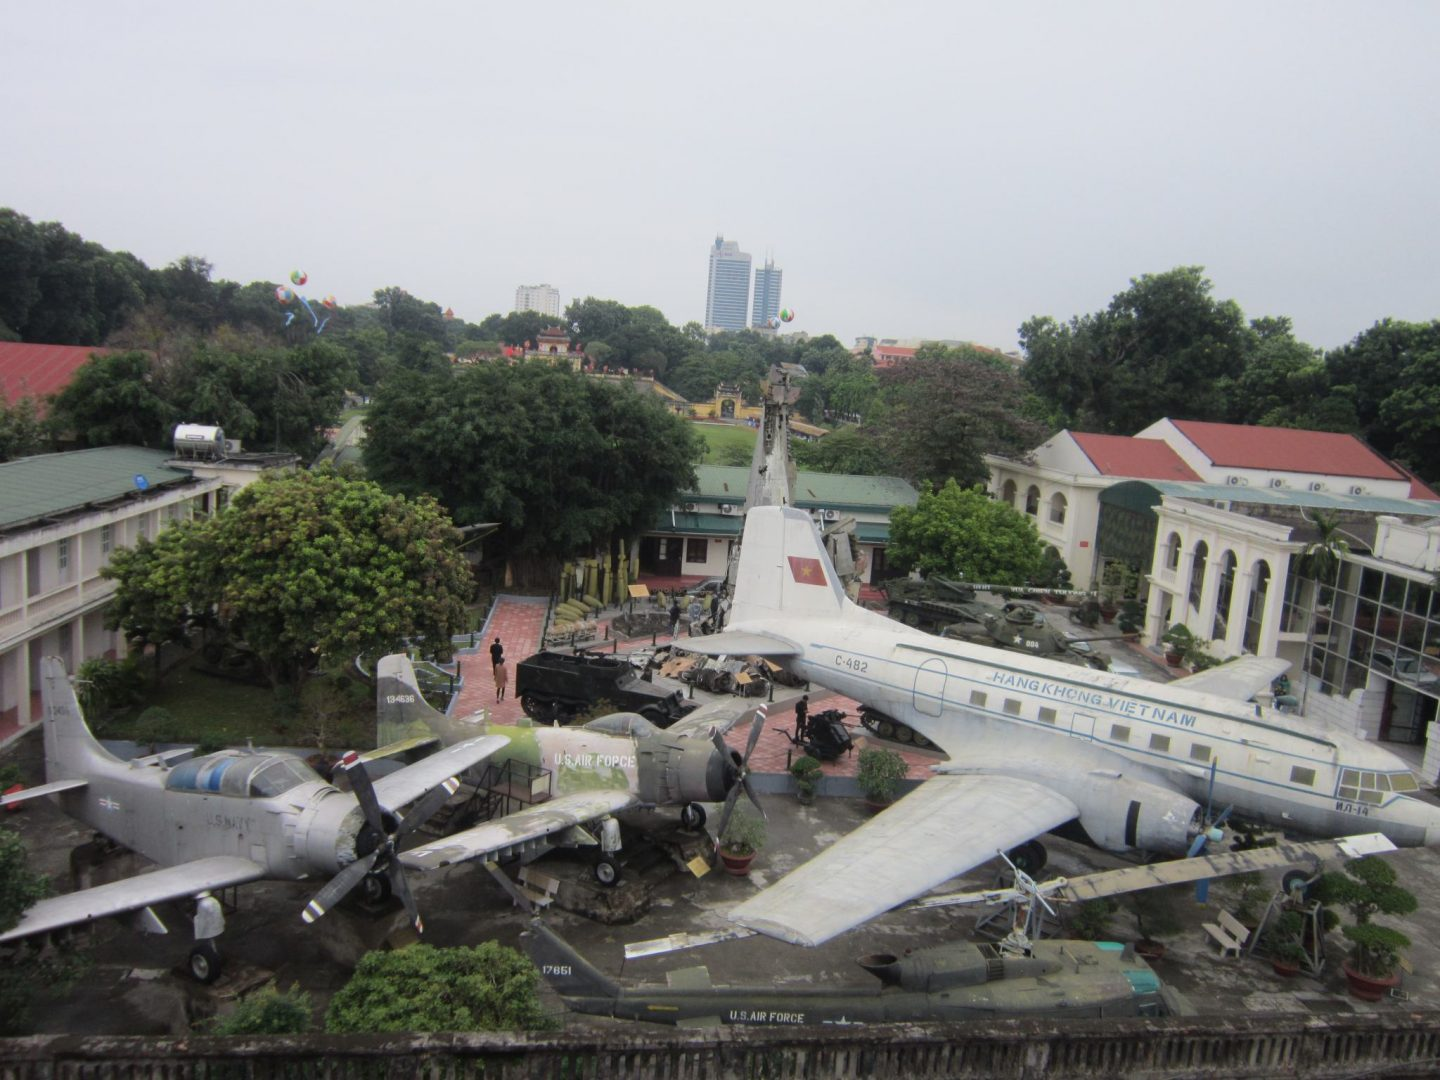 Military hardware on display at the The Military History Museum in Hanoi